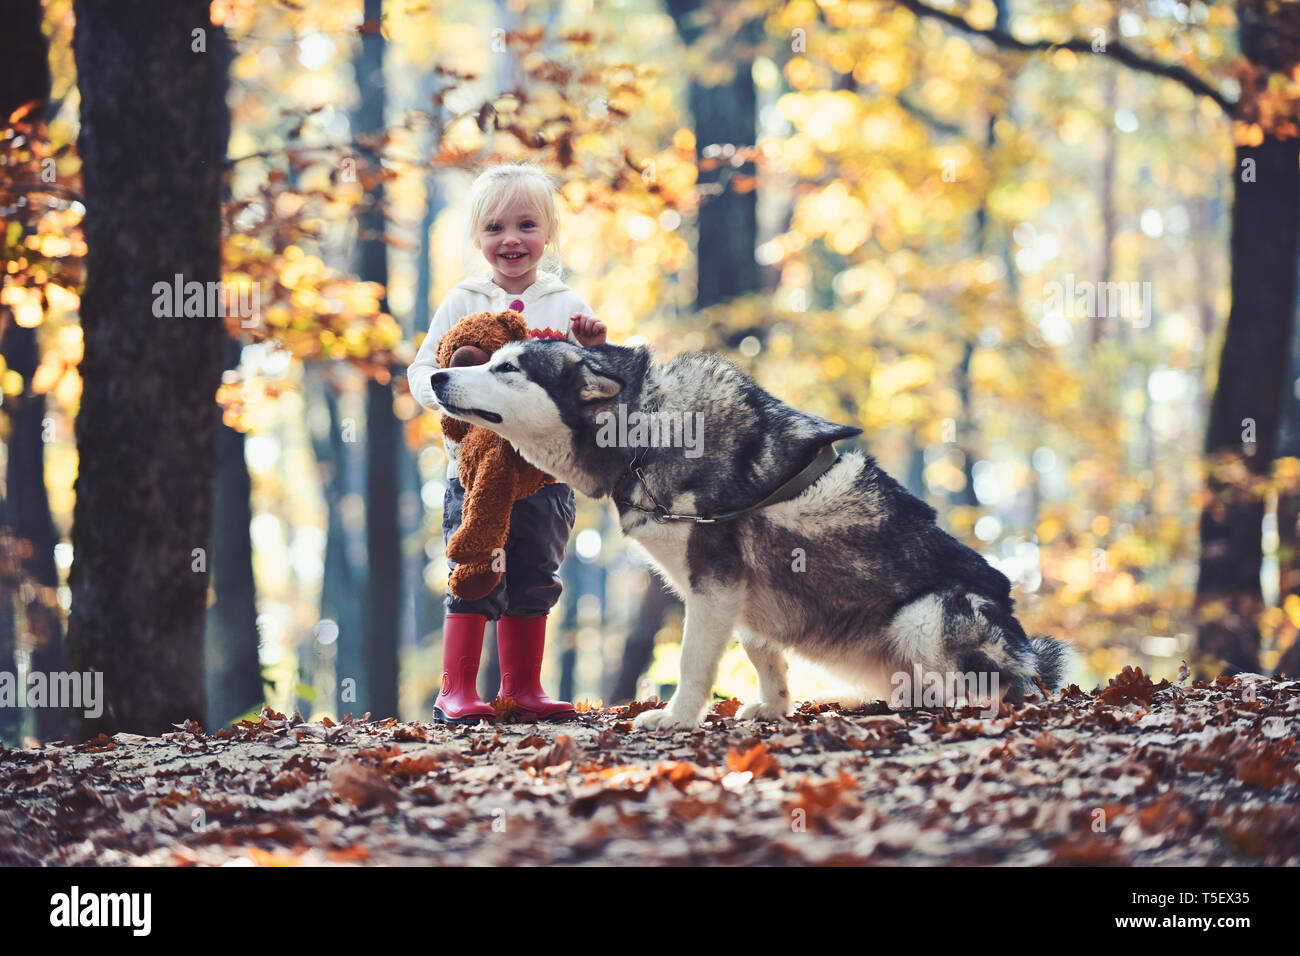 Dog husky with child on fresh air outdoor. Dog and little girl in autumn forest - Stock Image